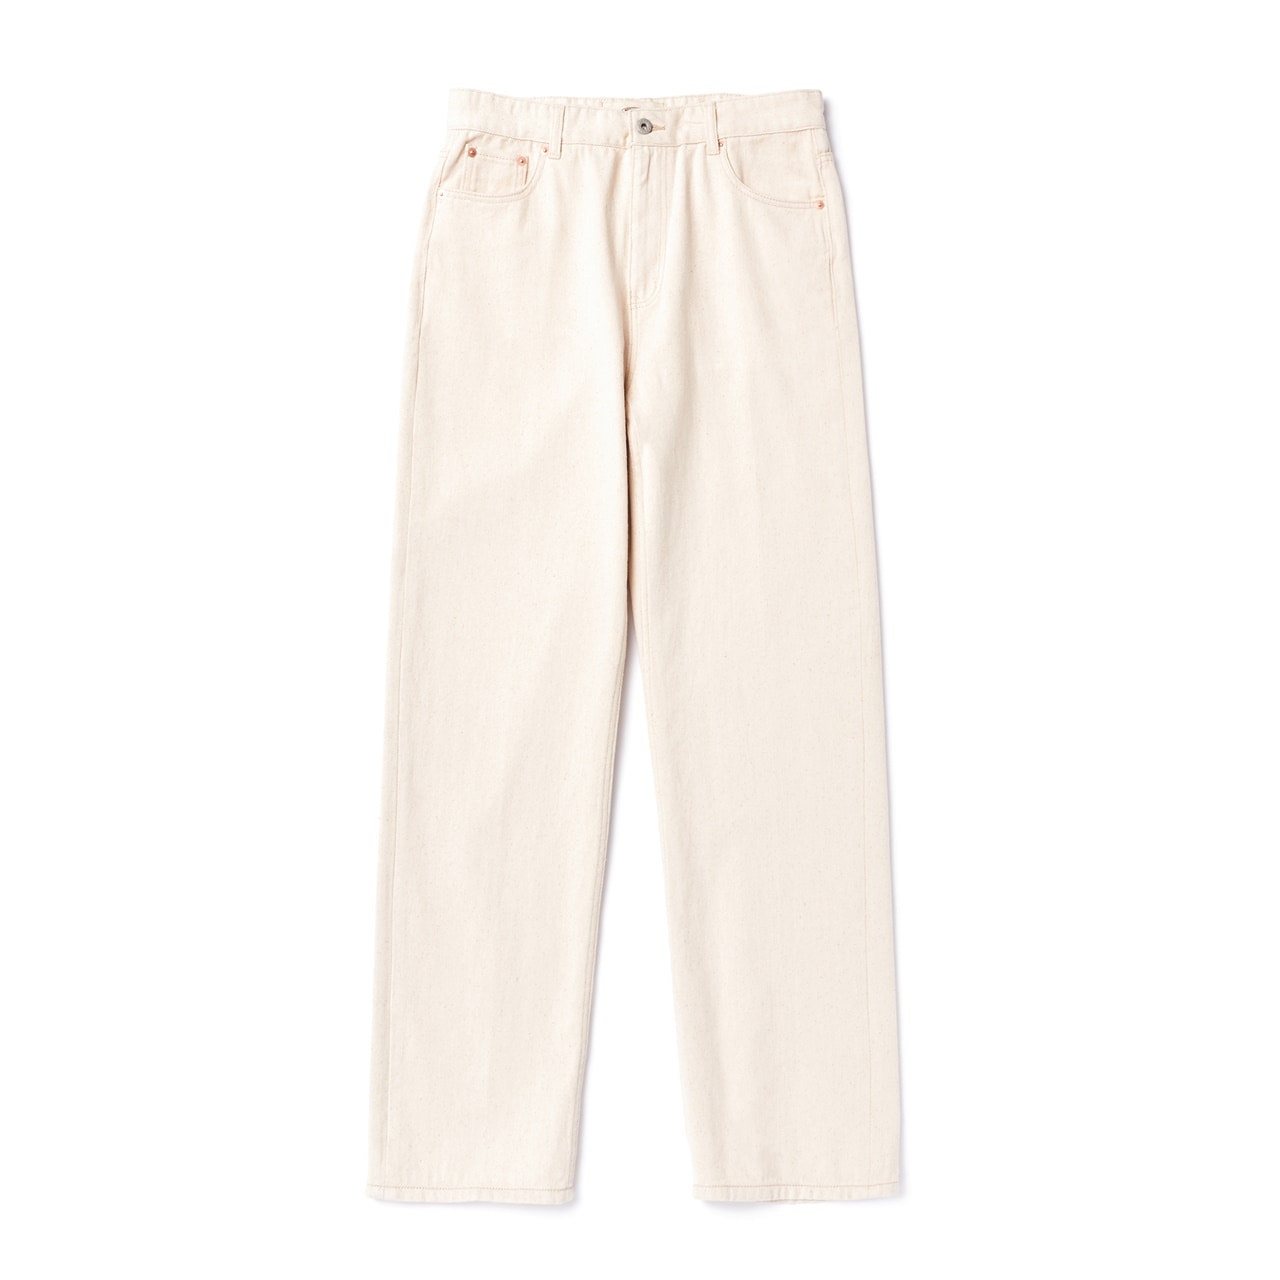 -[AMFEAST] CREAM REGULAR FIT 5 POCKET PANTS